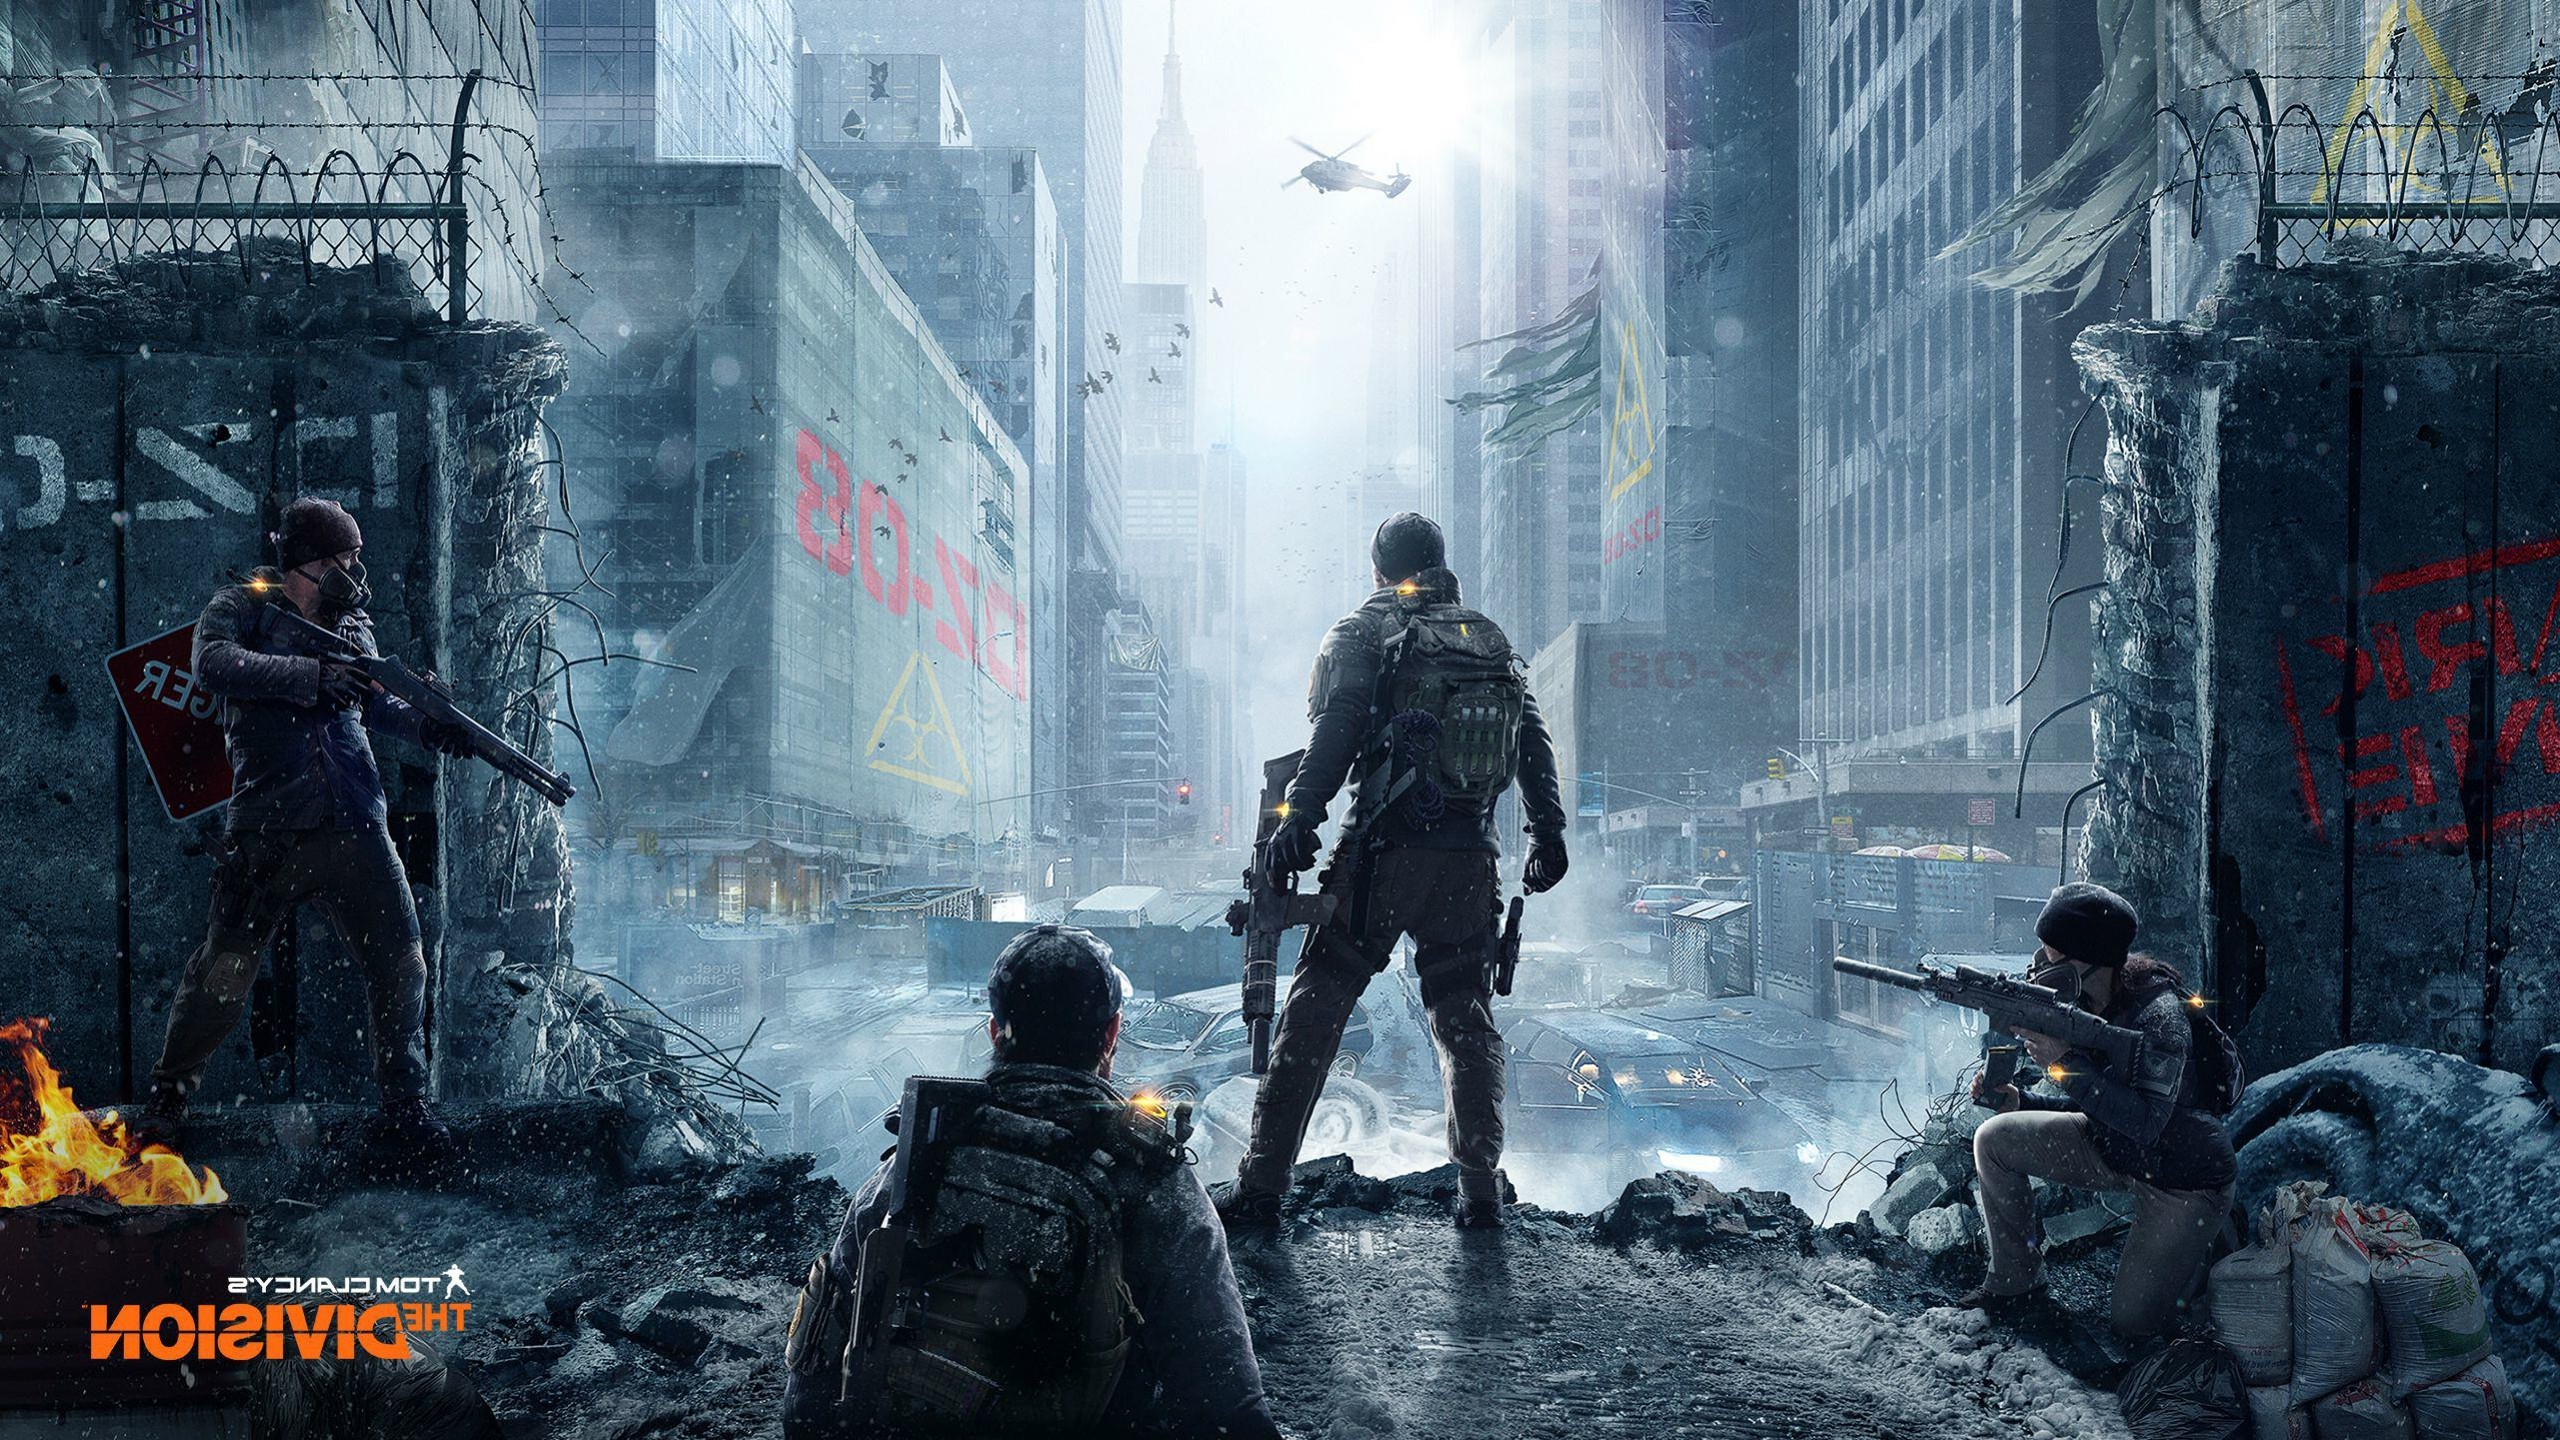 Tom Clancy's The Division Quarantine Area wallpapers (40 Wallpapers)